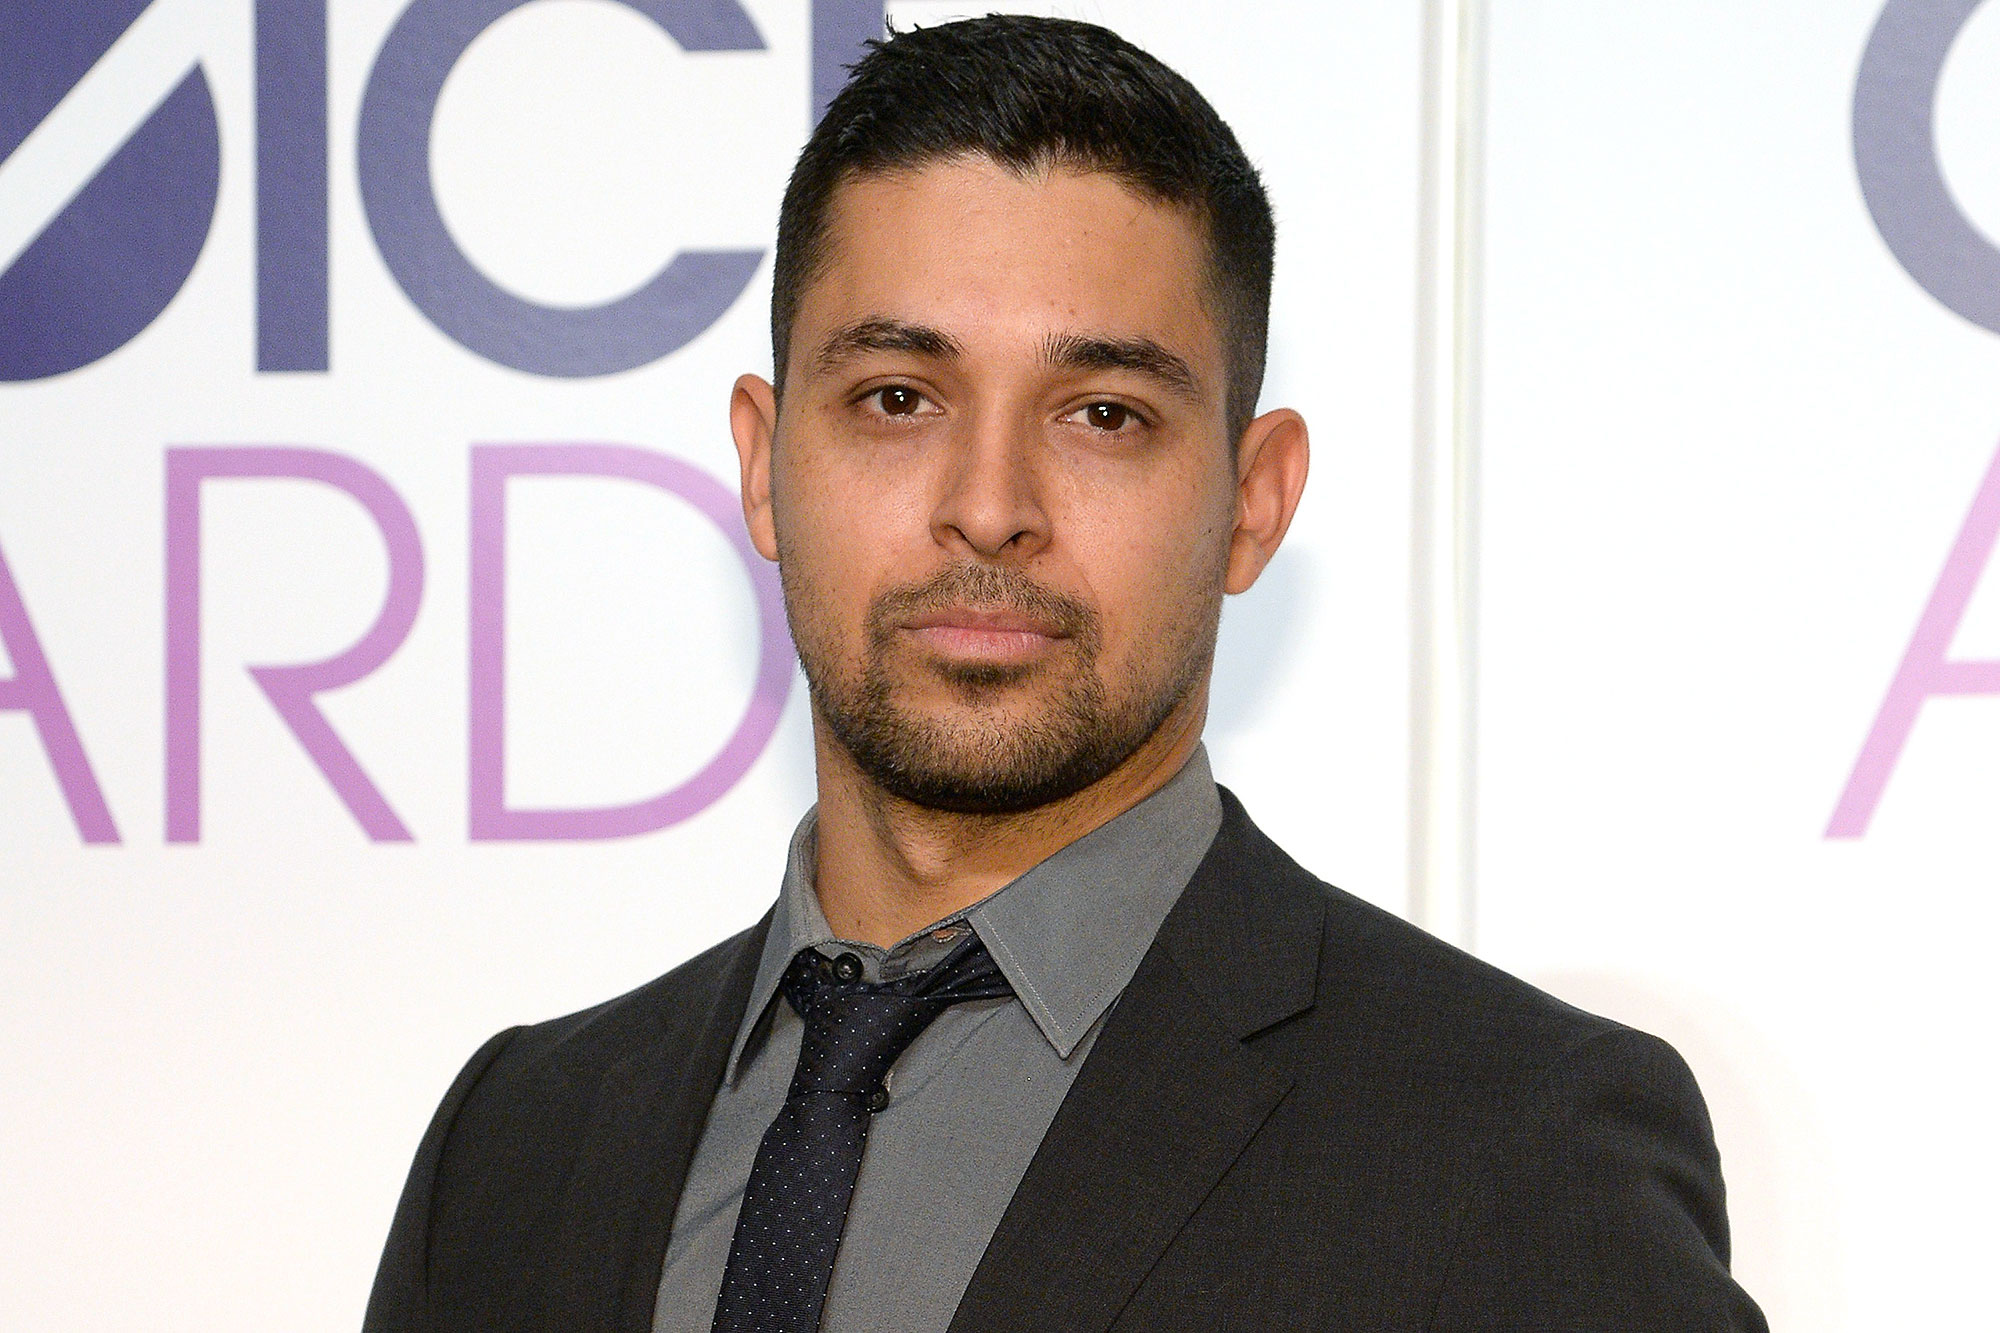 People's Choice Awards Nominations Press Conference